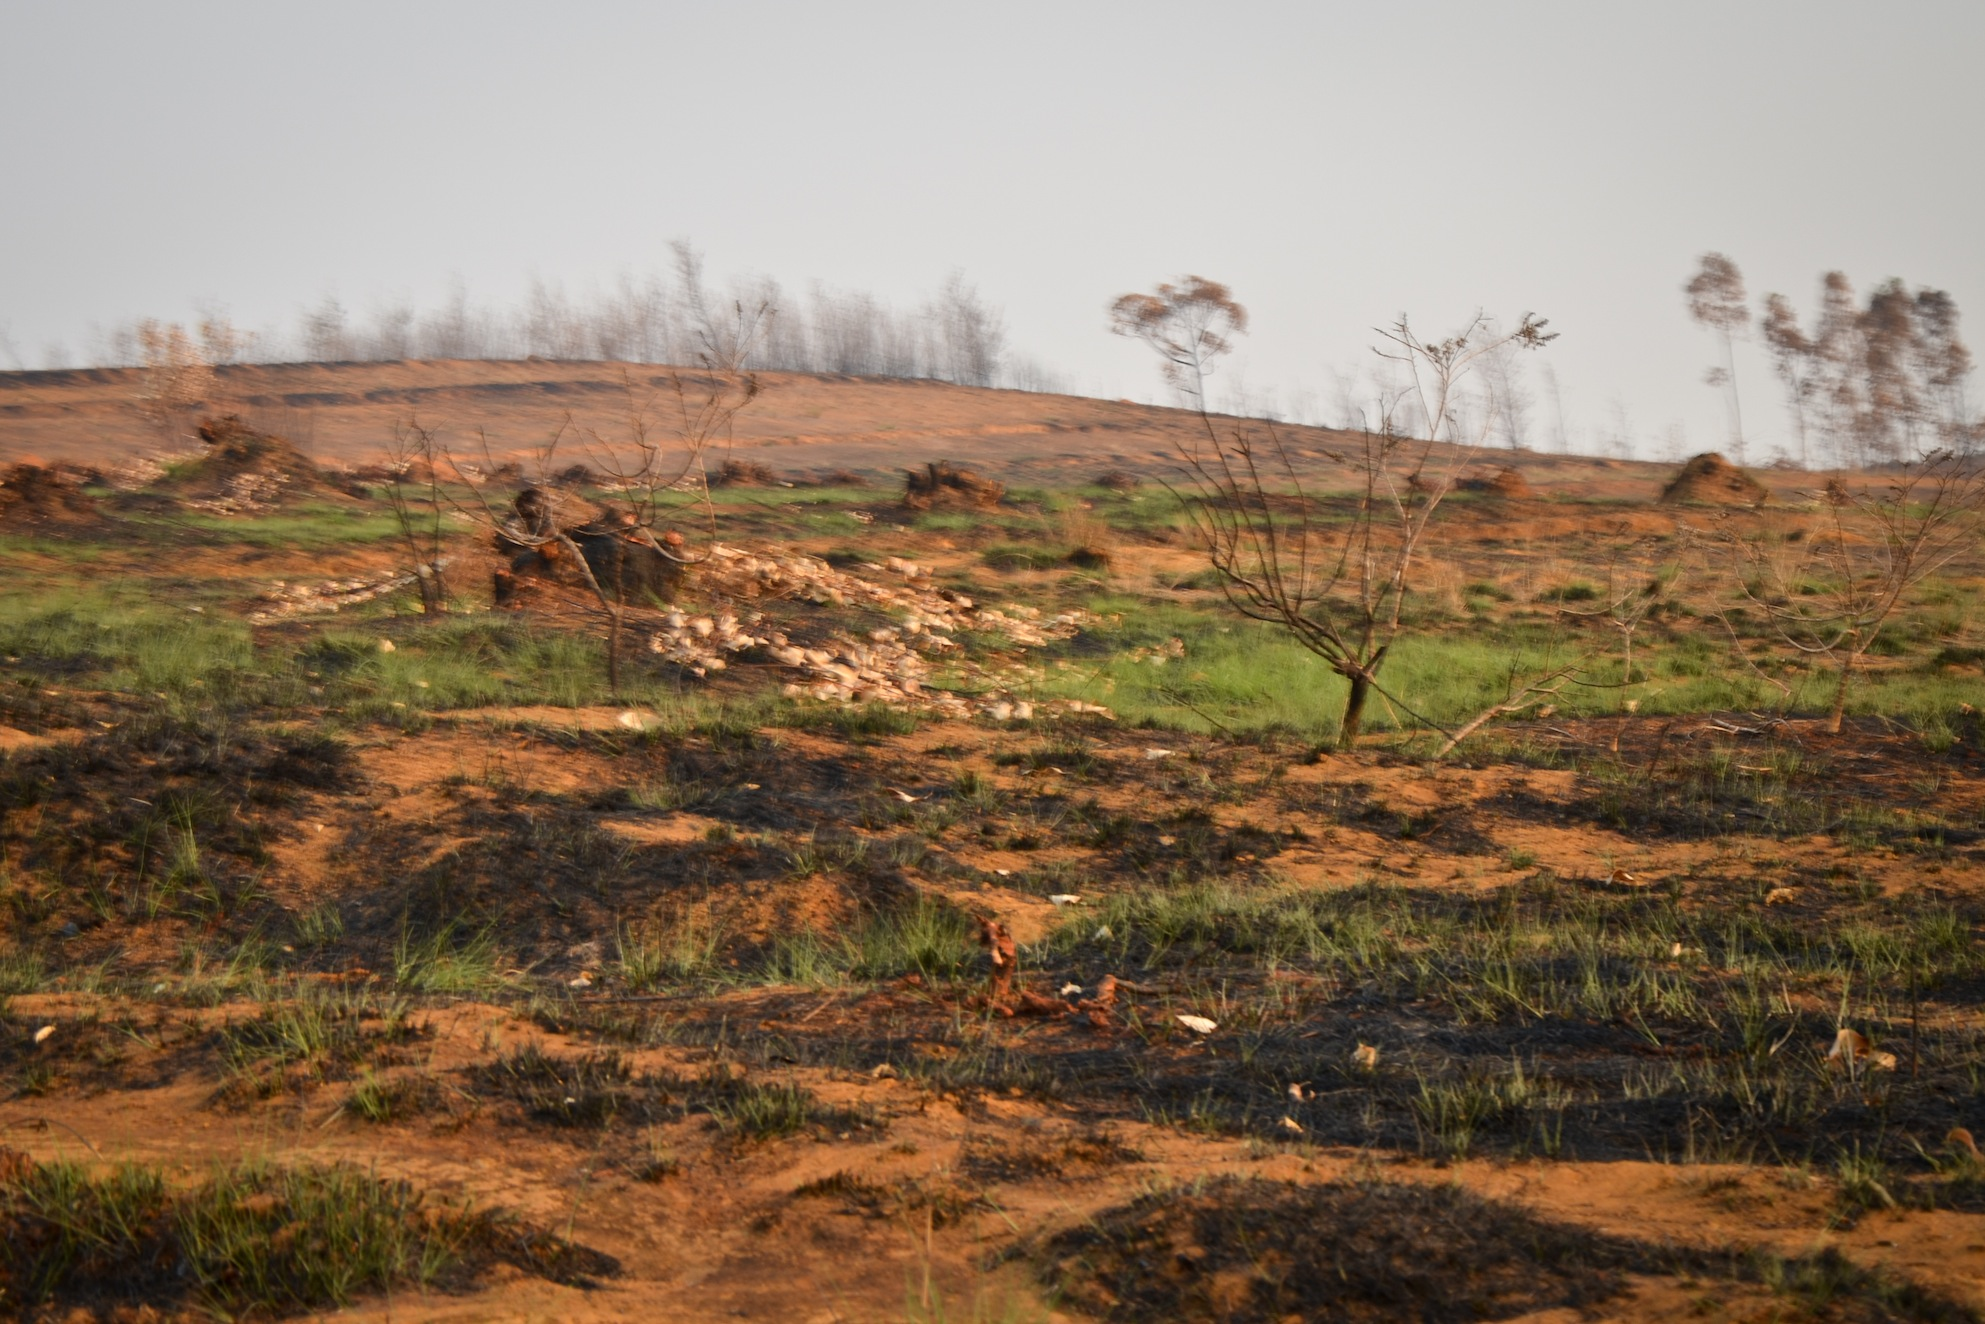 Small grass sprouts emerge from the ashes of a recently burned hillside. This is the traditional practice of doro-tanetry, the expansive burning of shrubbery prior to the rainy season to promote the growth of young, green grass sprouts for grazing zebu. Photo: Alizé Carrère